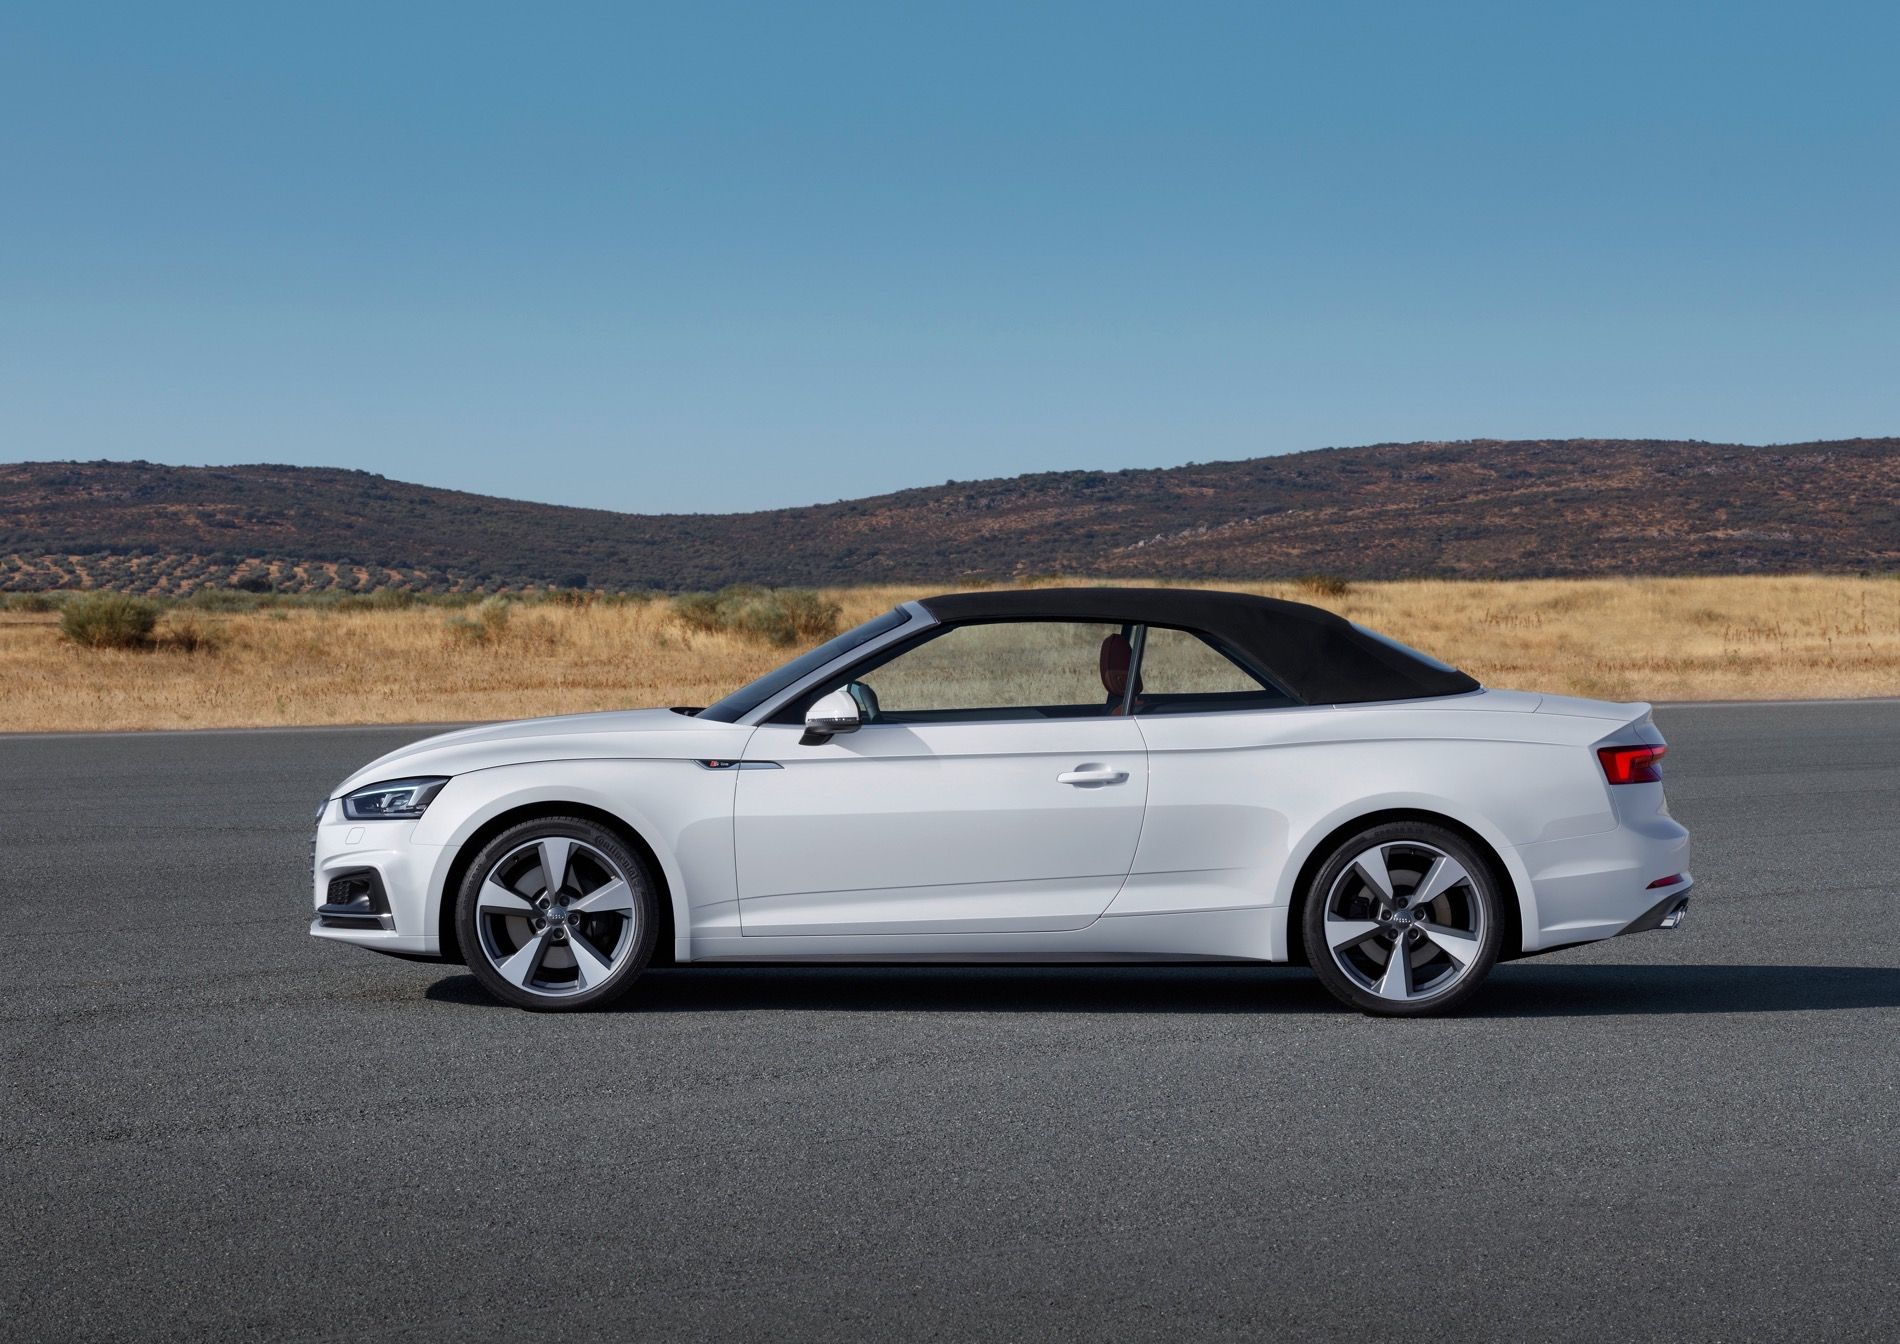 Video Watch As Audi Tests The A5 Cabriolet In Extreme Conditions A5 Cabriolet Audi A5 Convertible Cabriolets